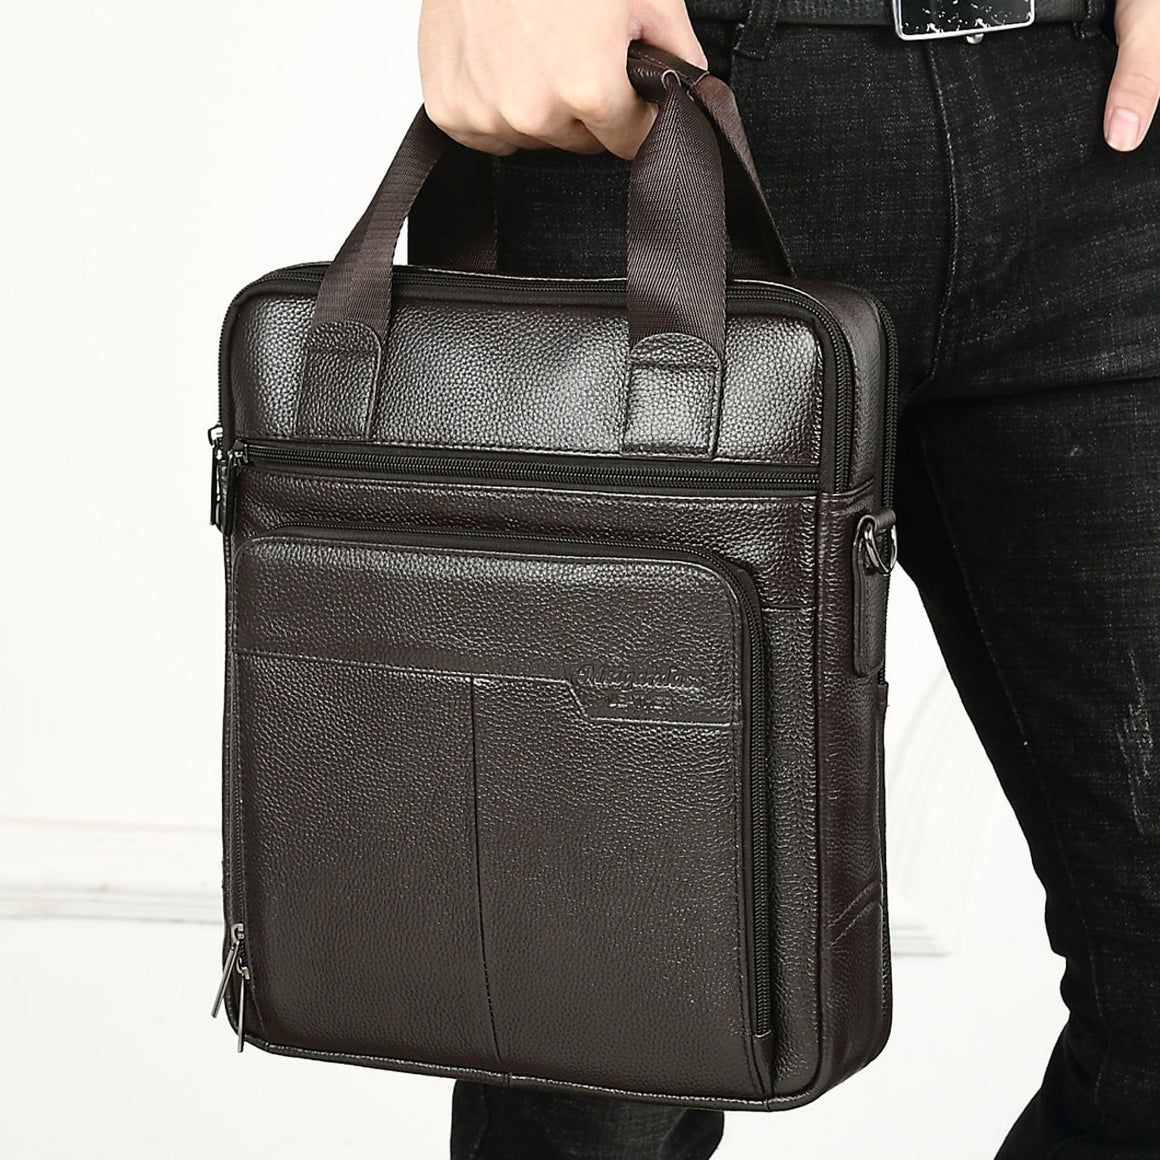 MEIGARDASS Genuine Leather Business Men Briefcase Men's Handbags Office Laptop Bag Male Casual Shoulder Computer Messenger Bags